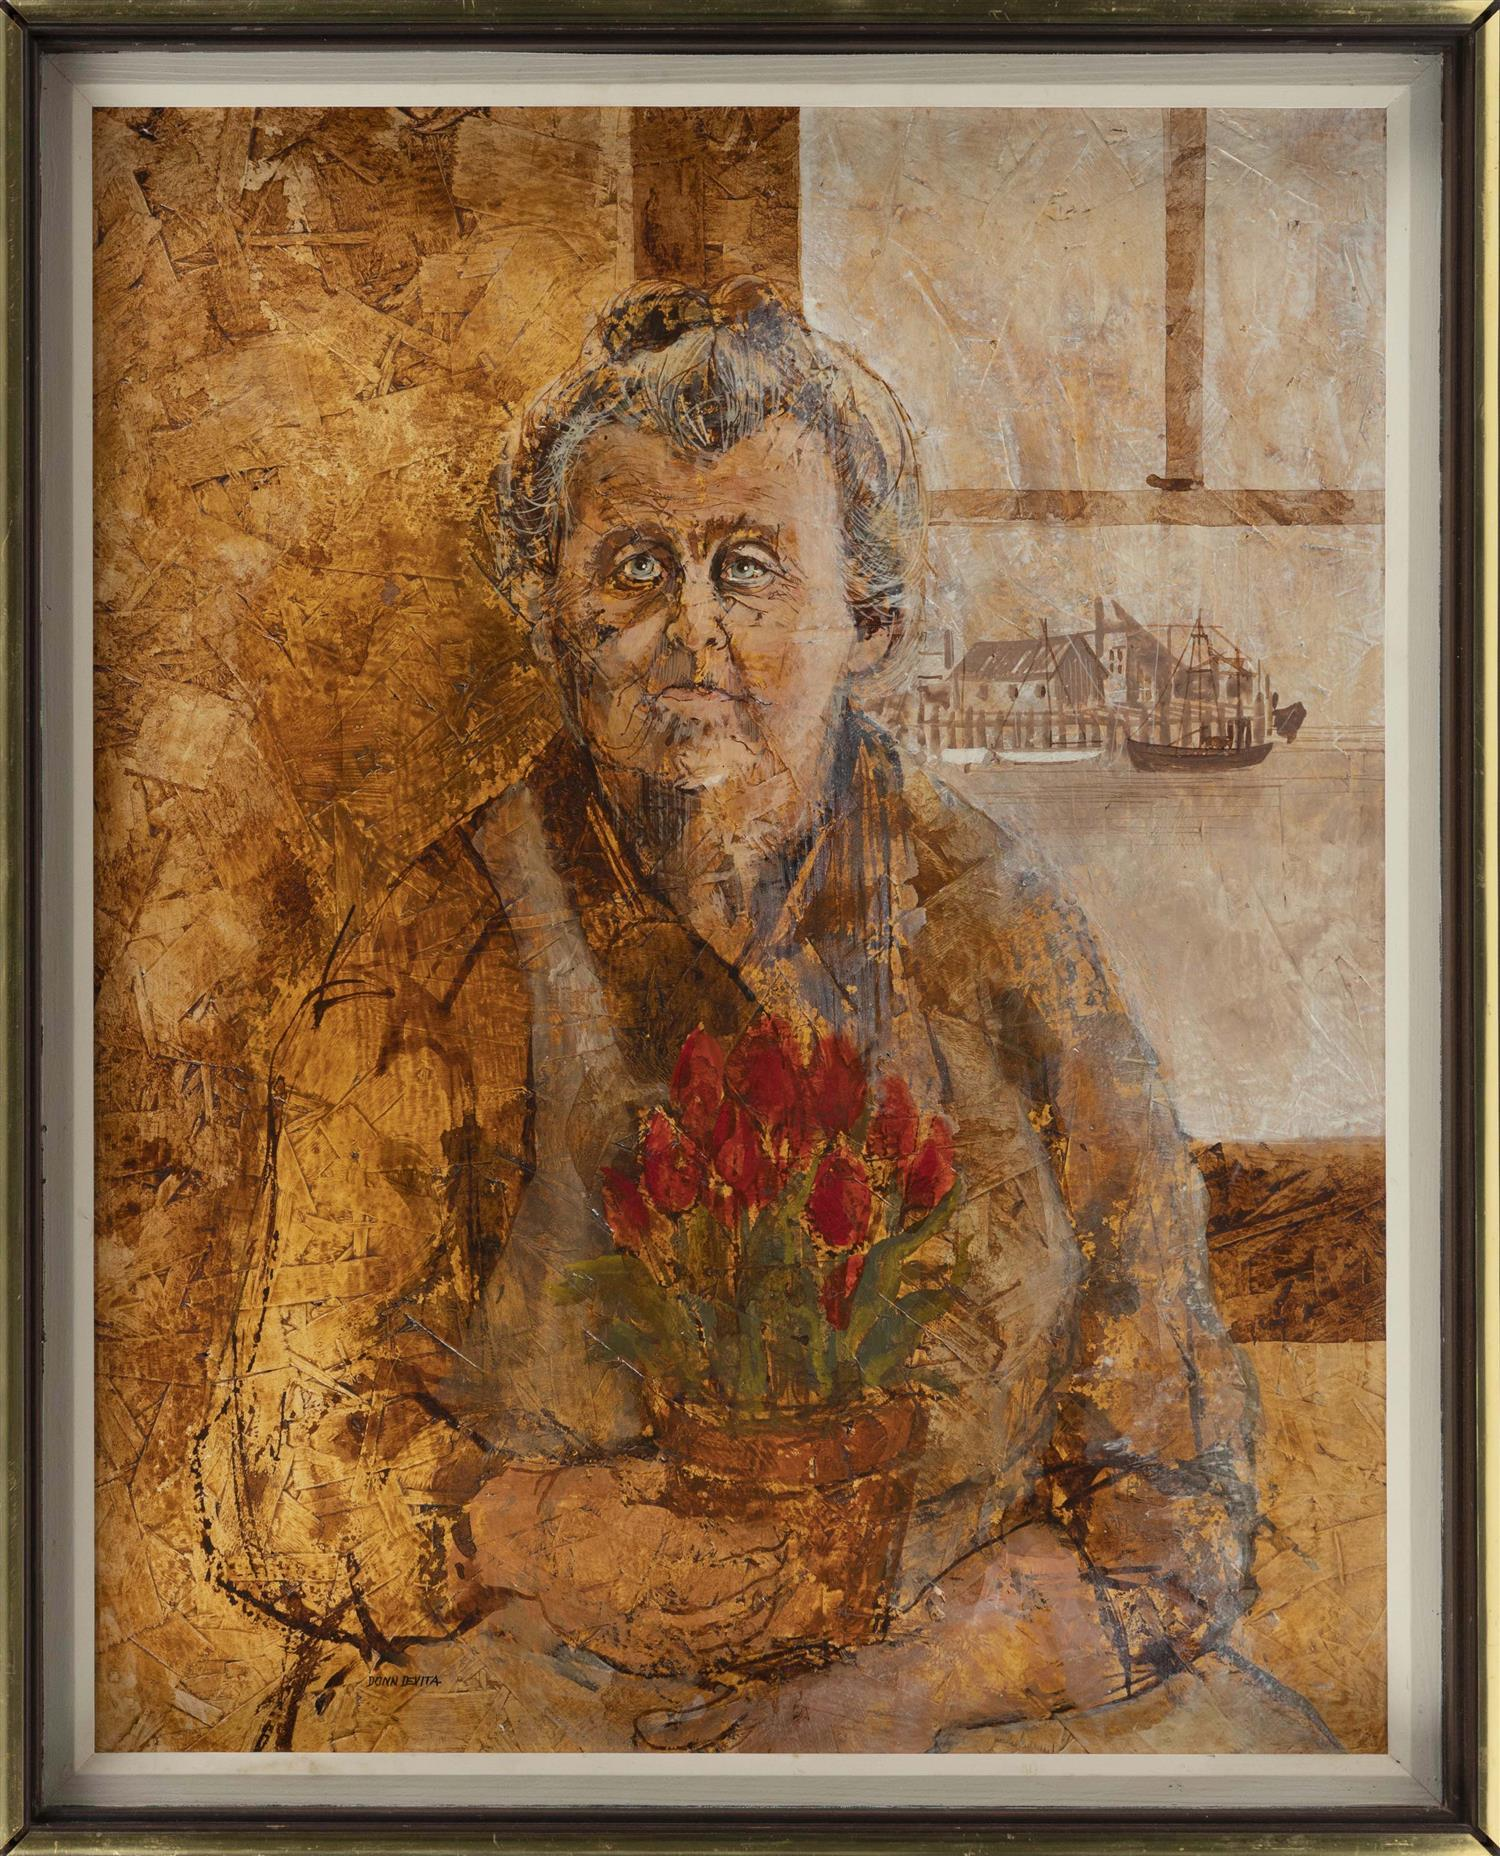 "DONN DEVITA, Dennis, Massachusetts, 1932-2010, Fisherman's wife seated by a window,, Oil on masonite, 20"" x 16"". Framed 21"" x 17""."